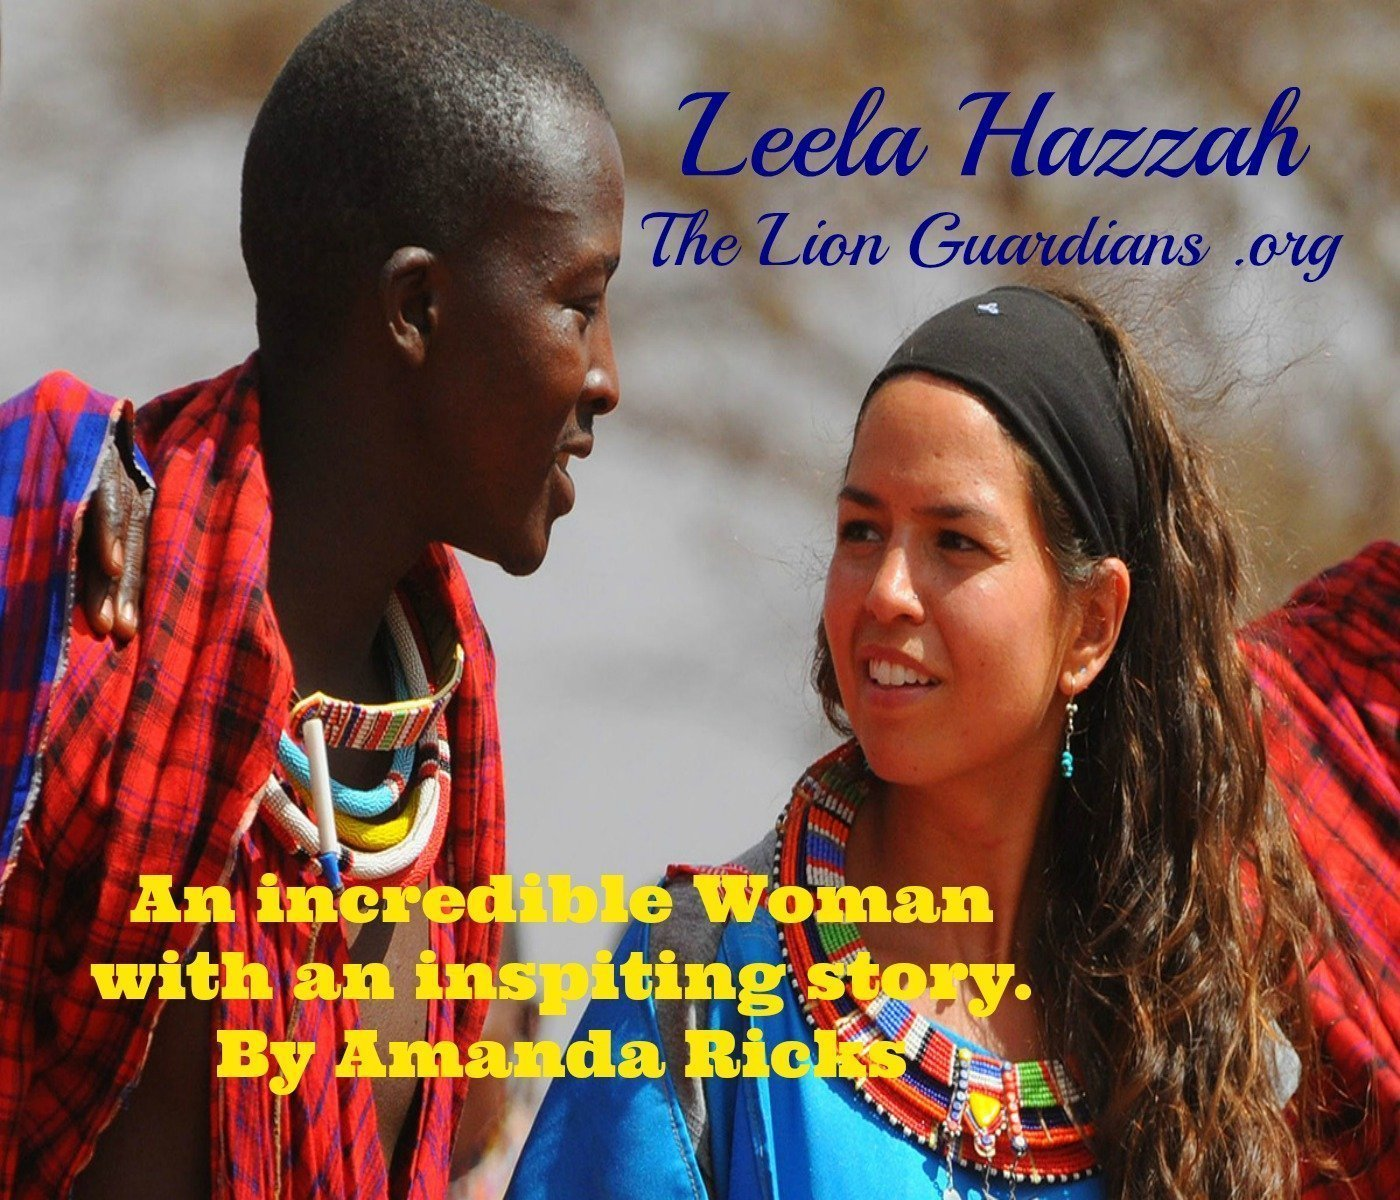 surprisinglives.net/leela-hazzah-africa-lion-guardian/